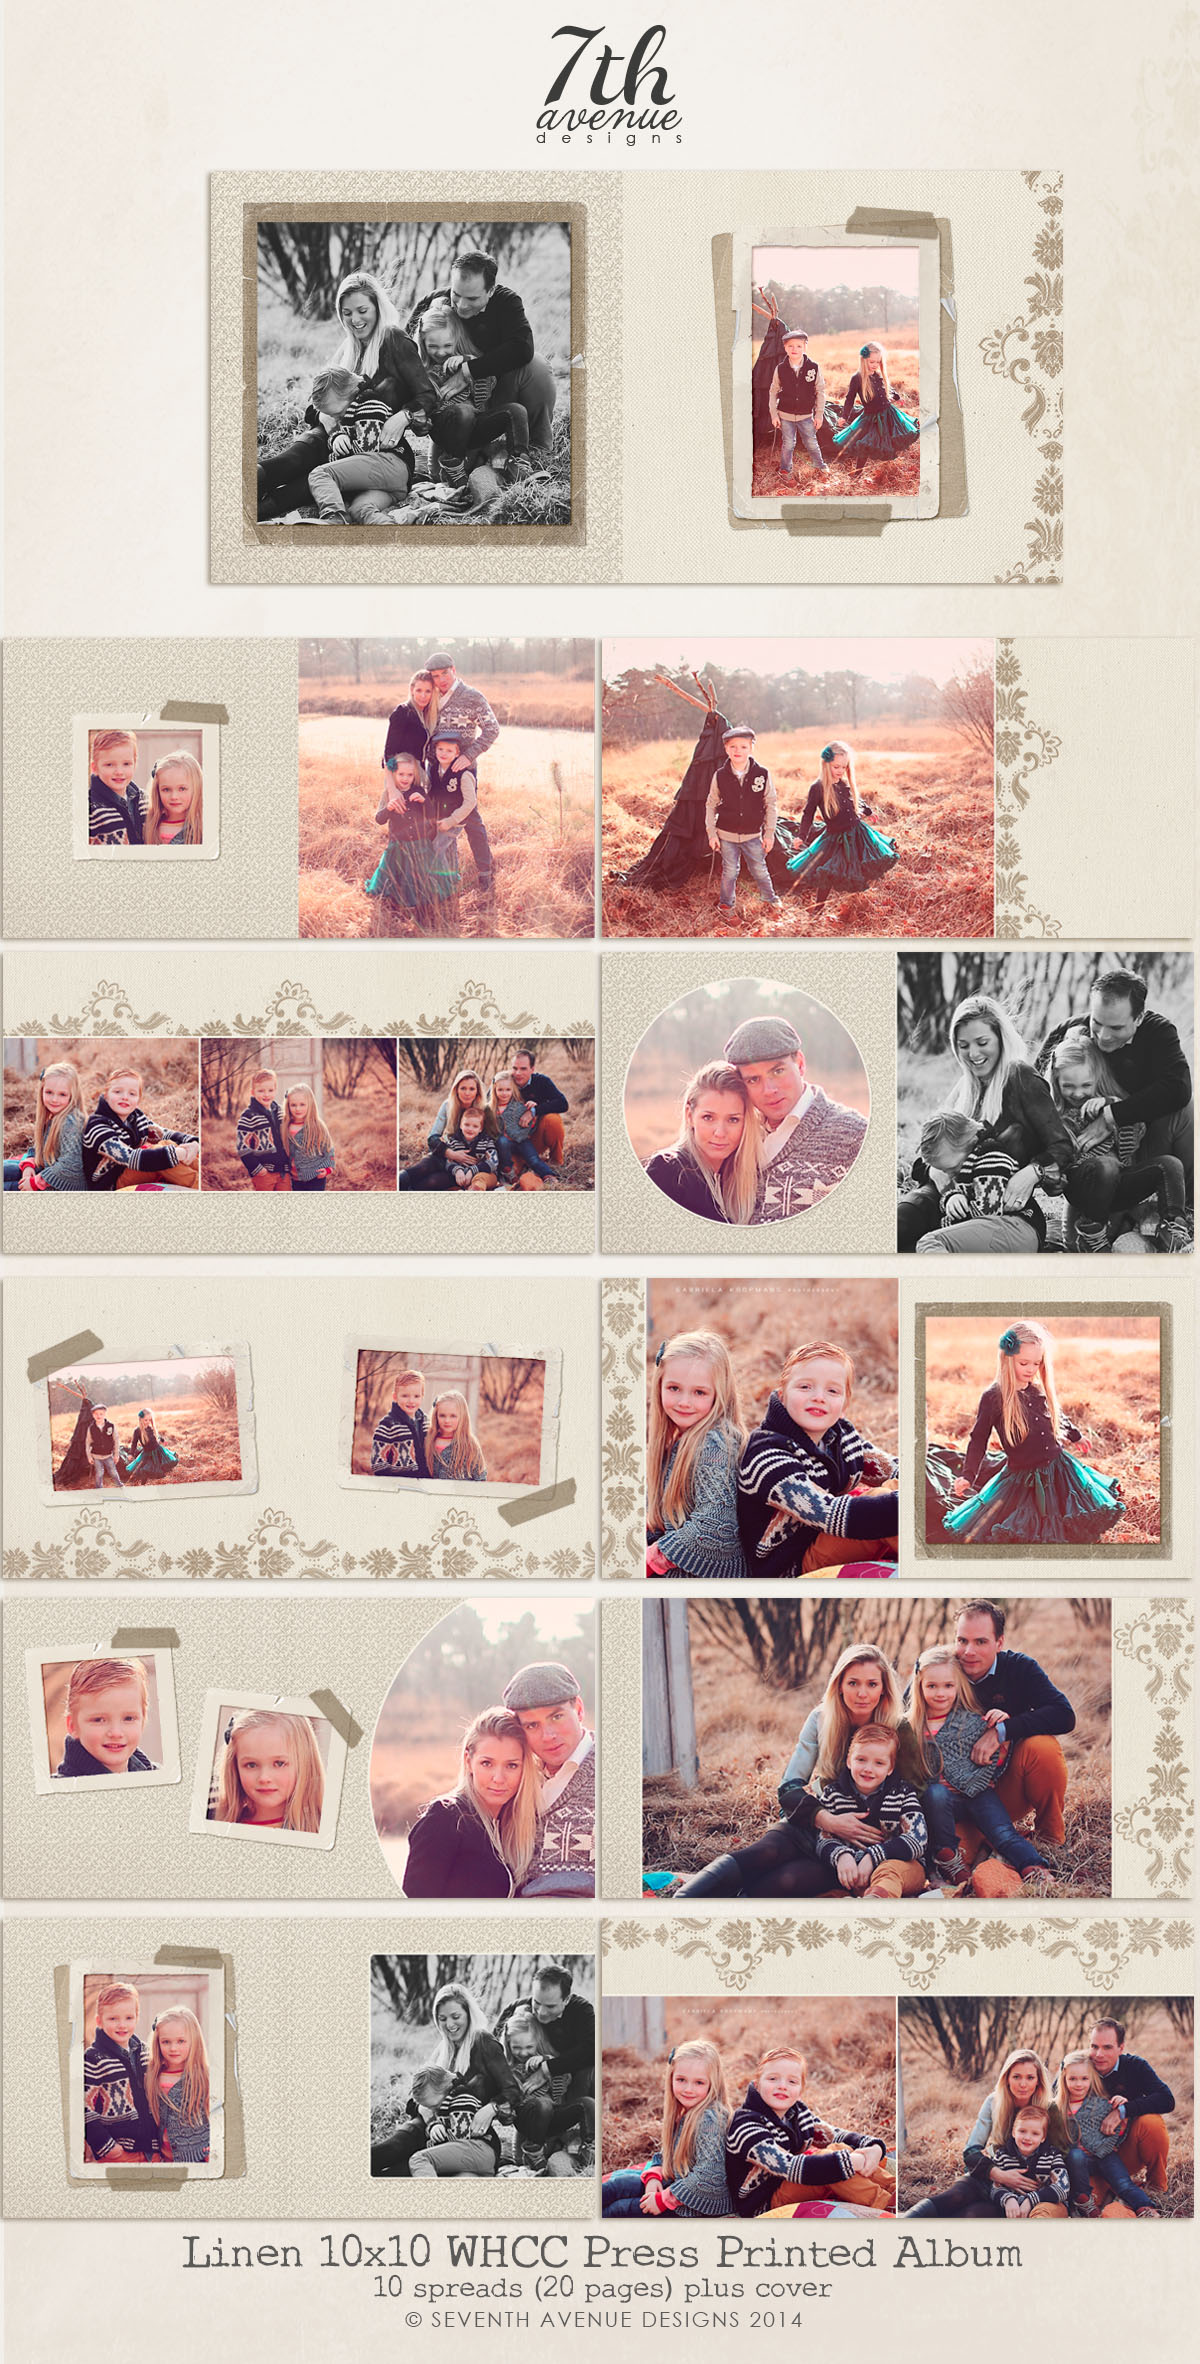 Linen 10x10 WHCC Press Printed Album